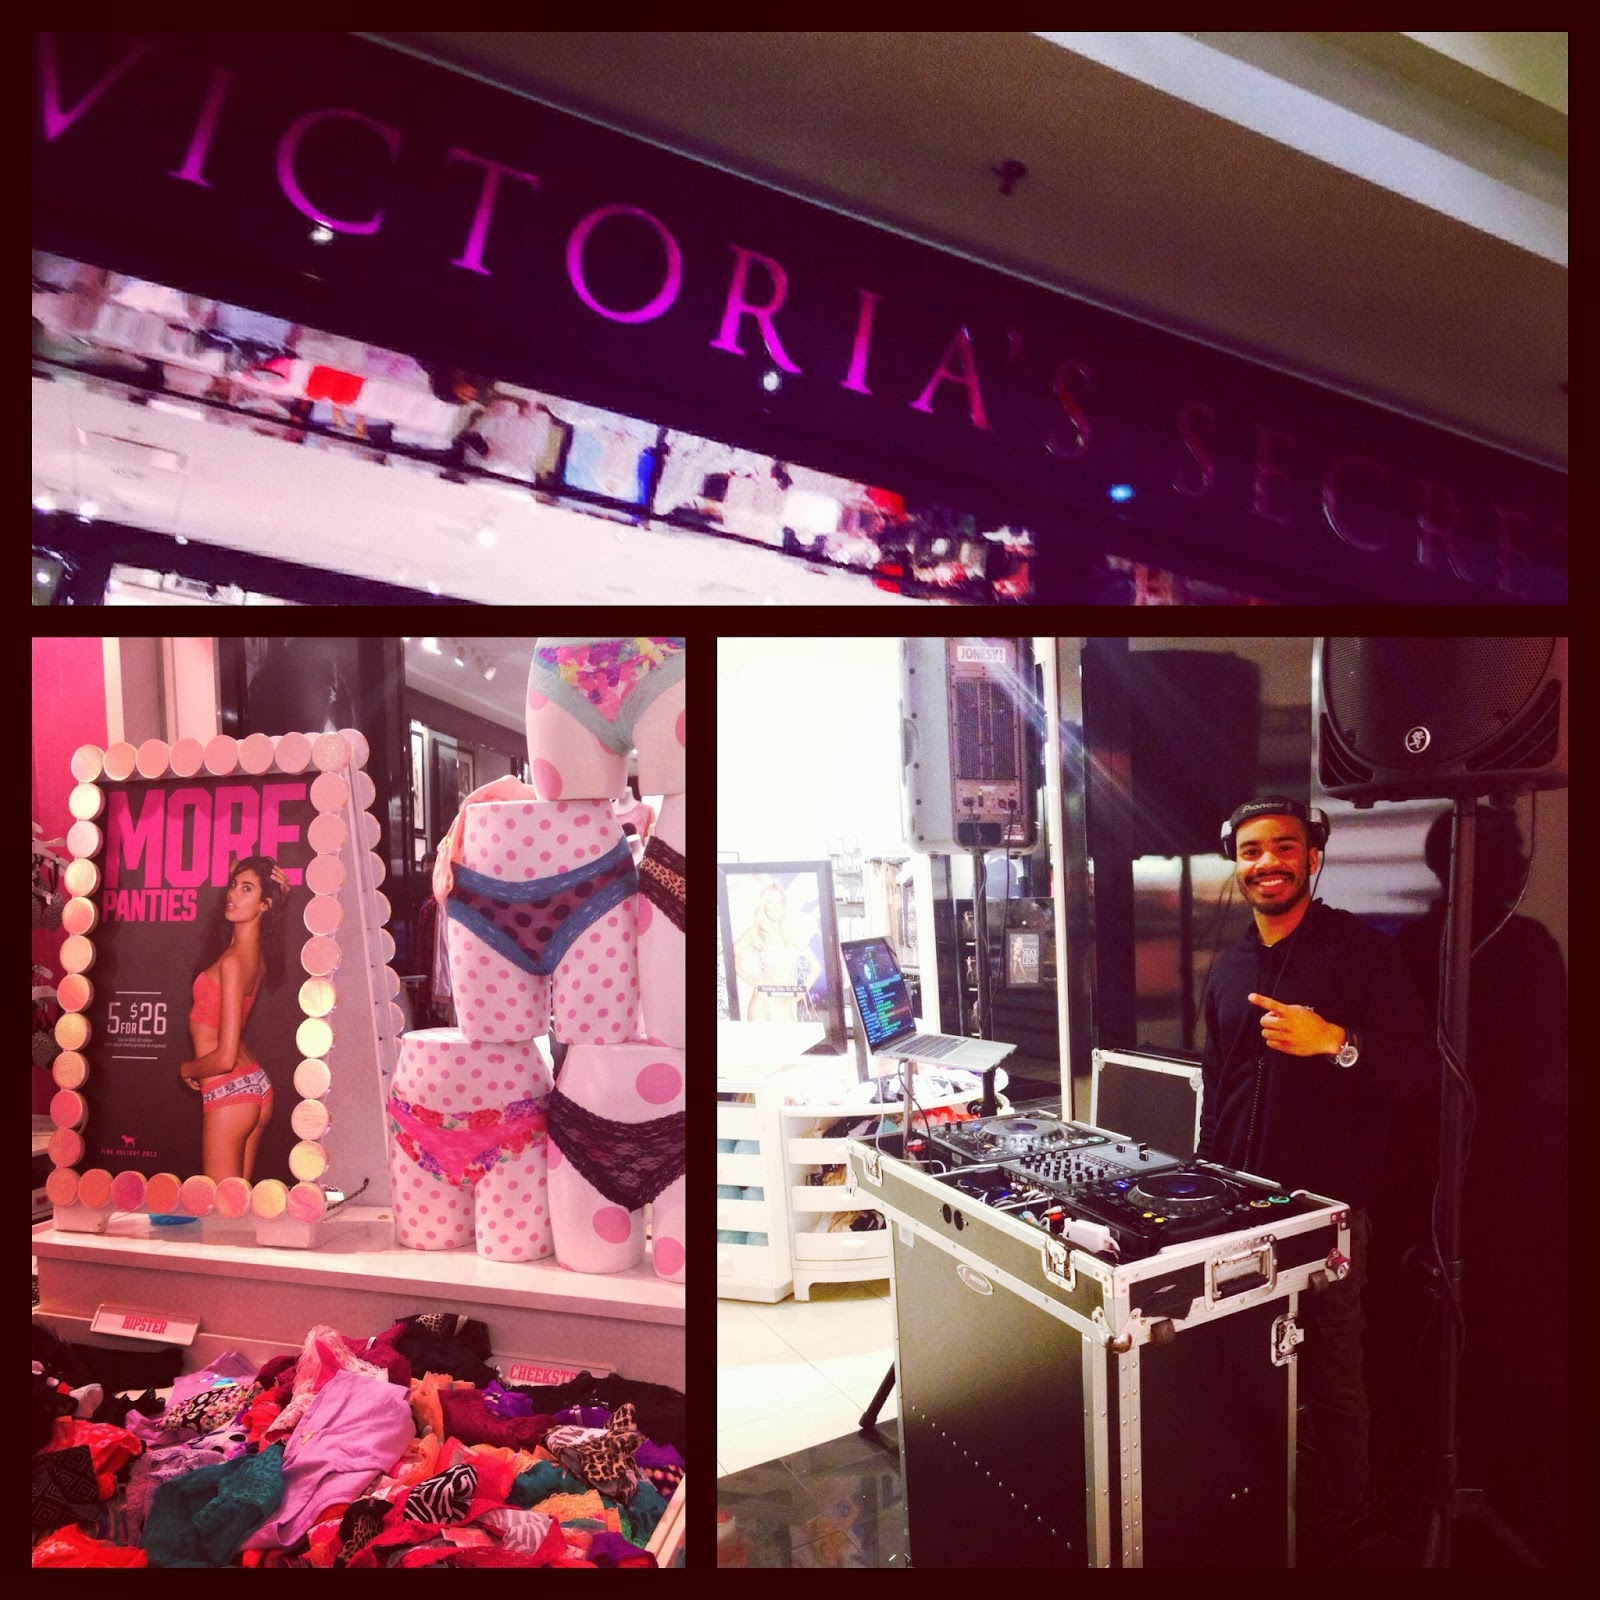 Sunday, Dec. 8th brought me to Victoria's Secret of Milford CT for their holiday shopping event.    #ScratchEvents    @ScratchEventsDJs